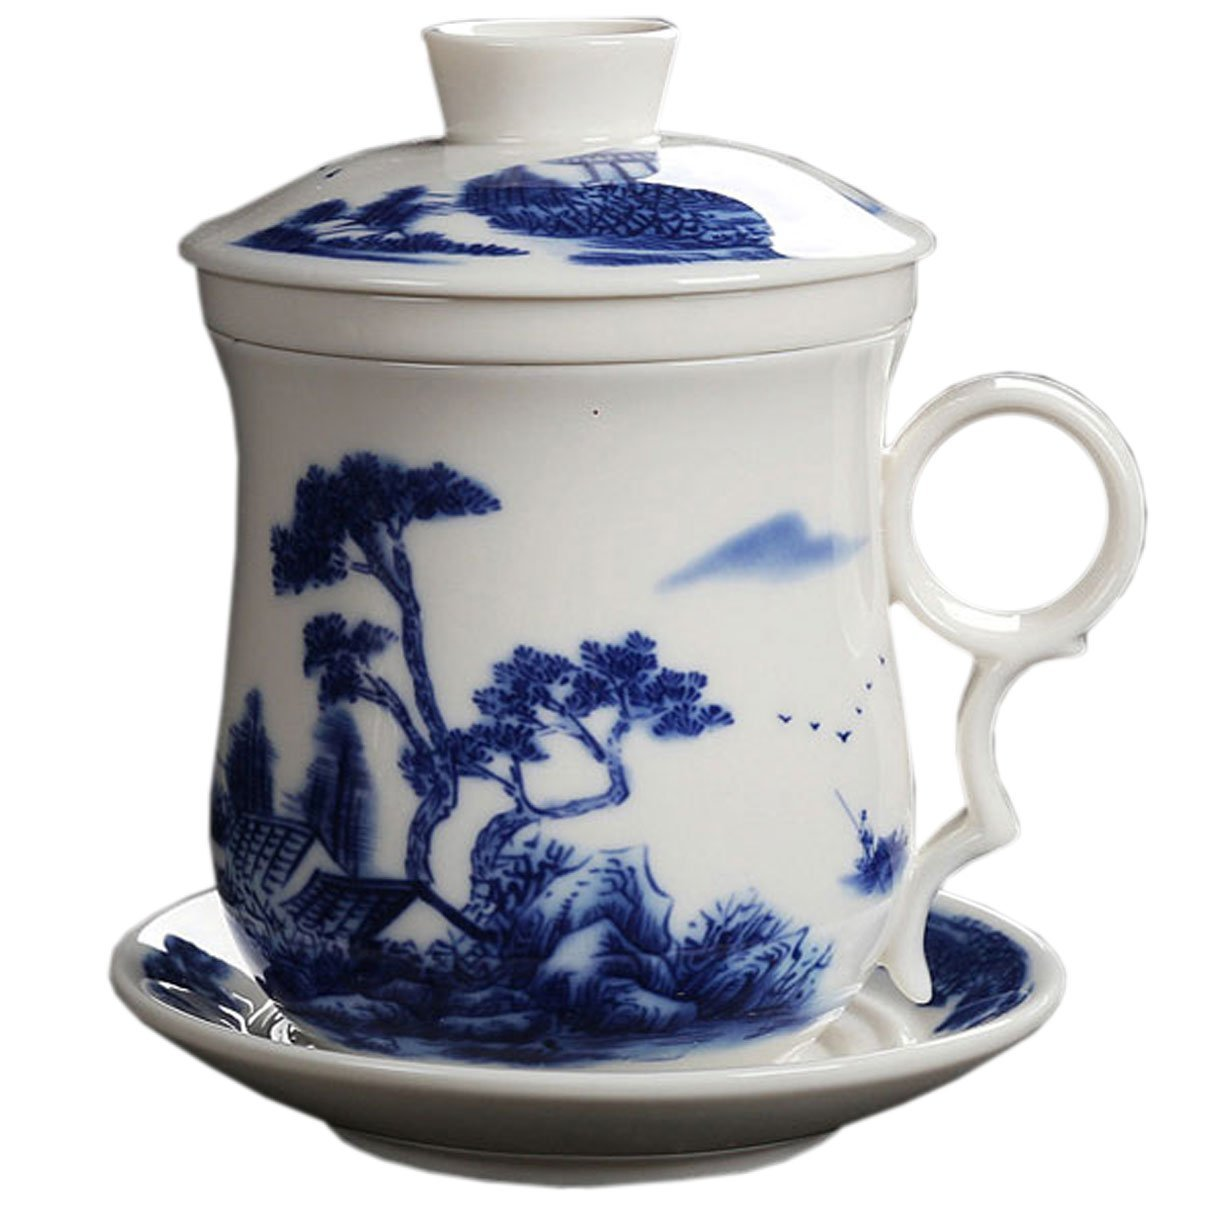 BandTie Convenient Travel Office Loose Leaf Tea Brewing System-Chinese Jingdezhen Blue and White Porcelain Tea Cup Infuser 4-Piece Set with Tea Cup Lid and Saucer (Tree Pattern)